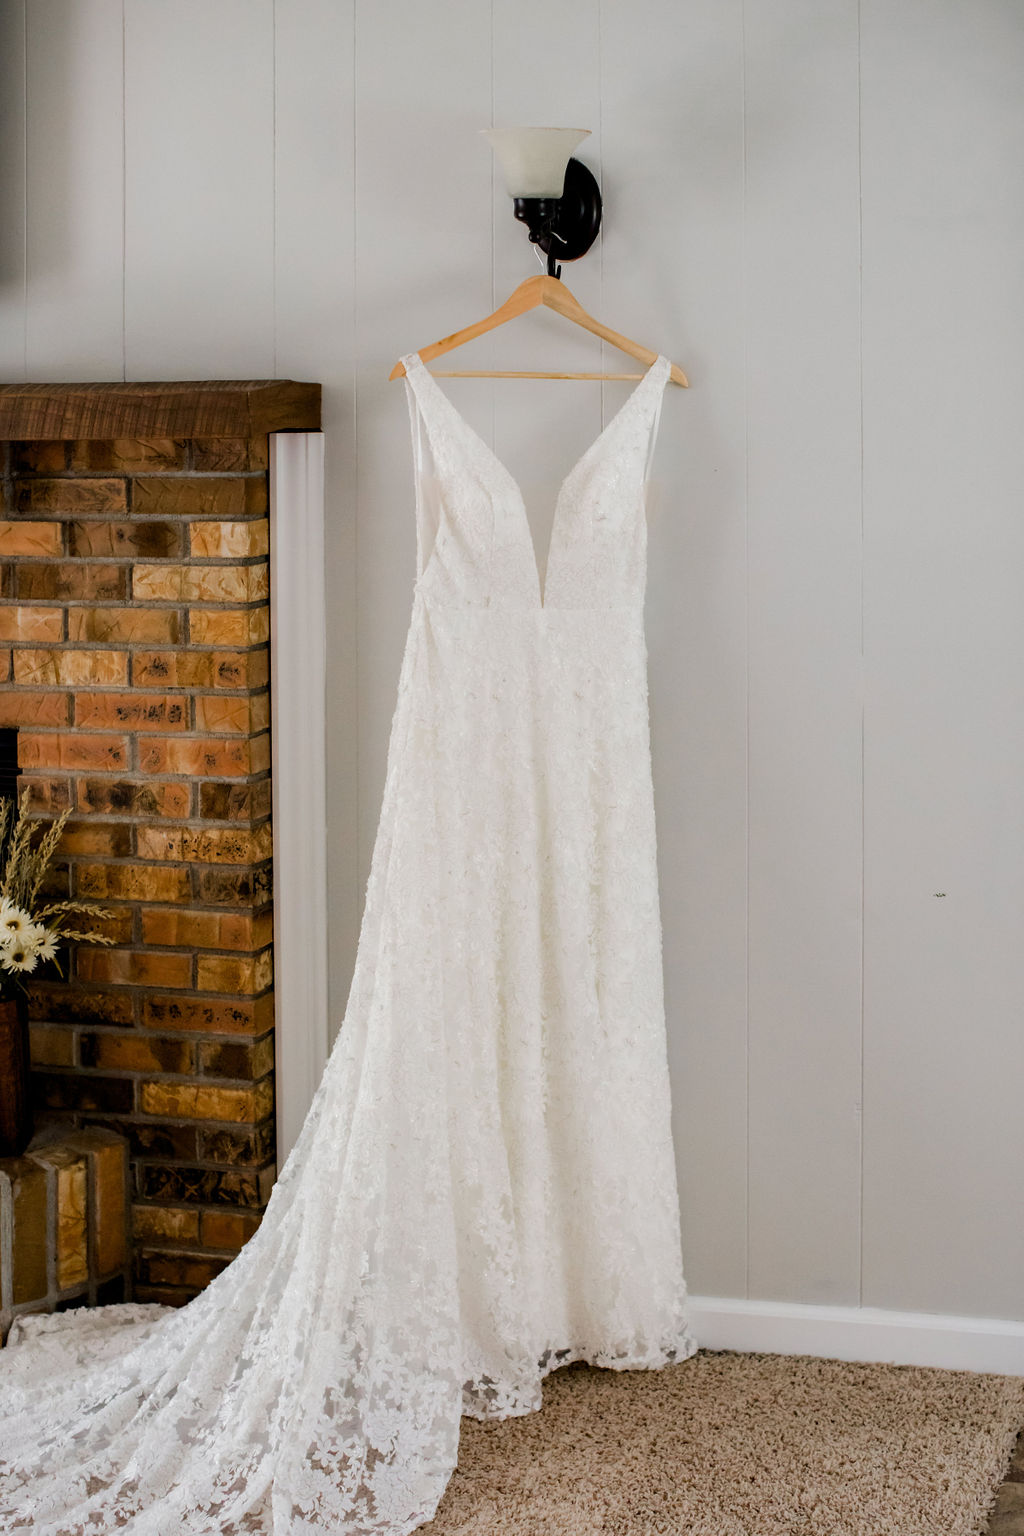 Jackson, MI wedding gown